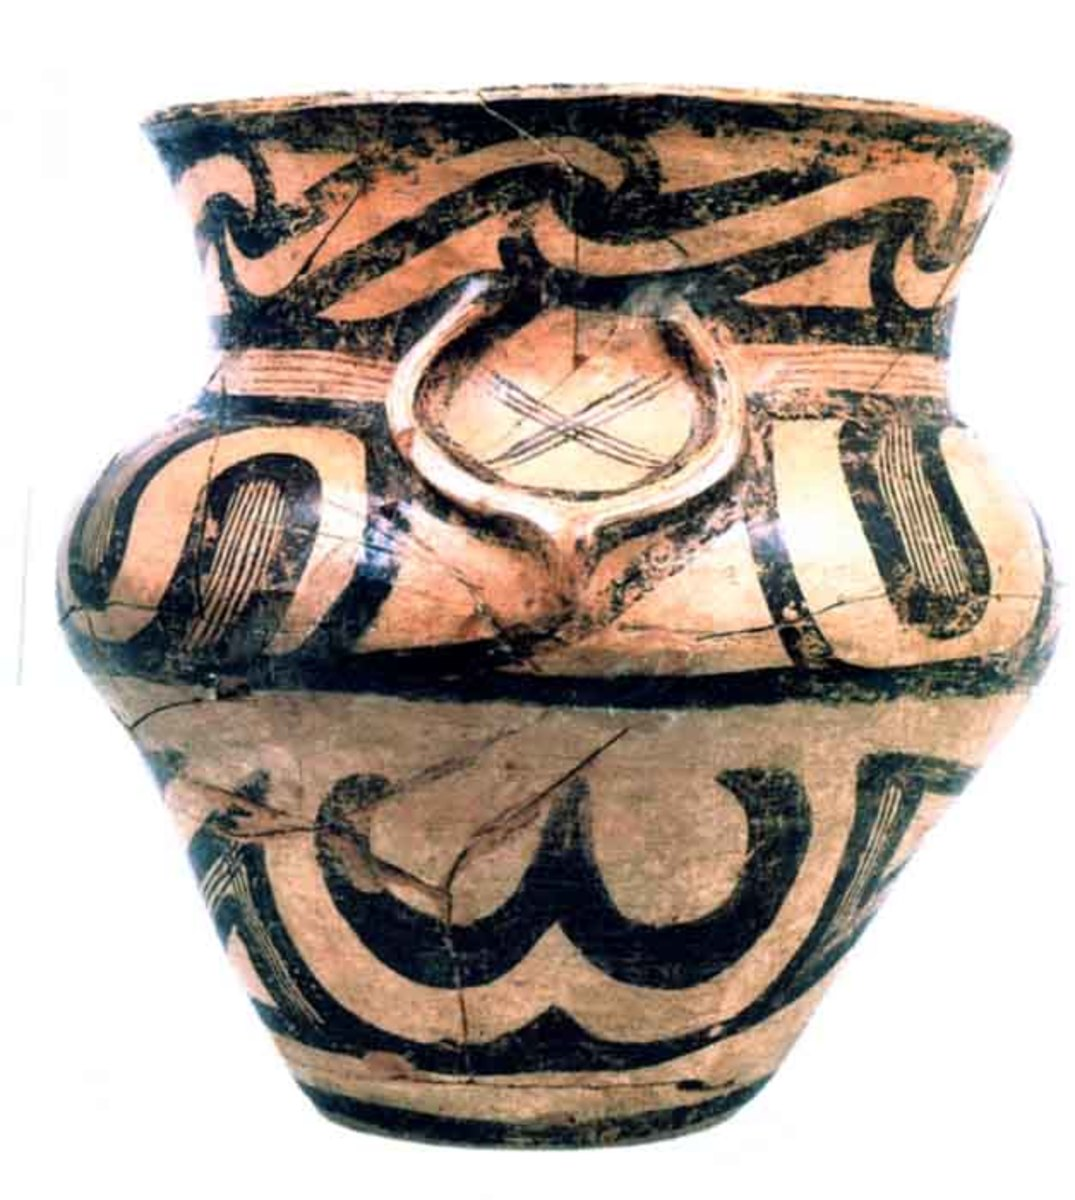 Cucuteni ceramic culture is unique in Europe